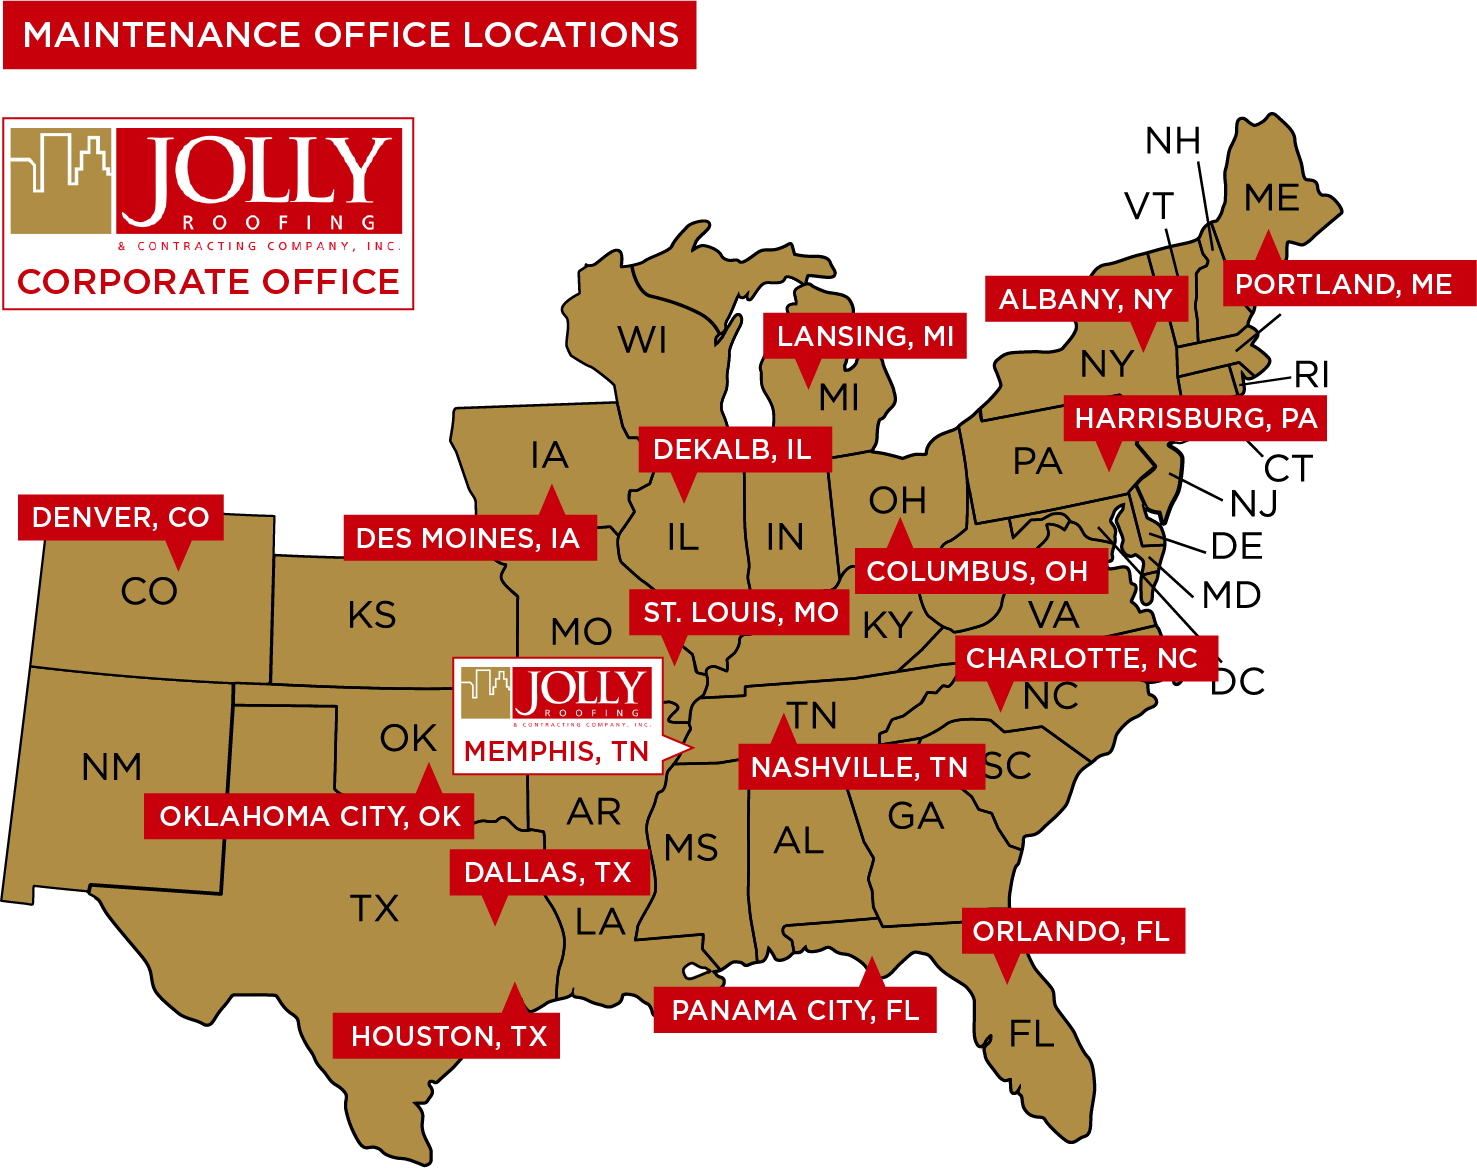 Jolly Roofing Service Area, 33 States